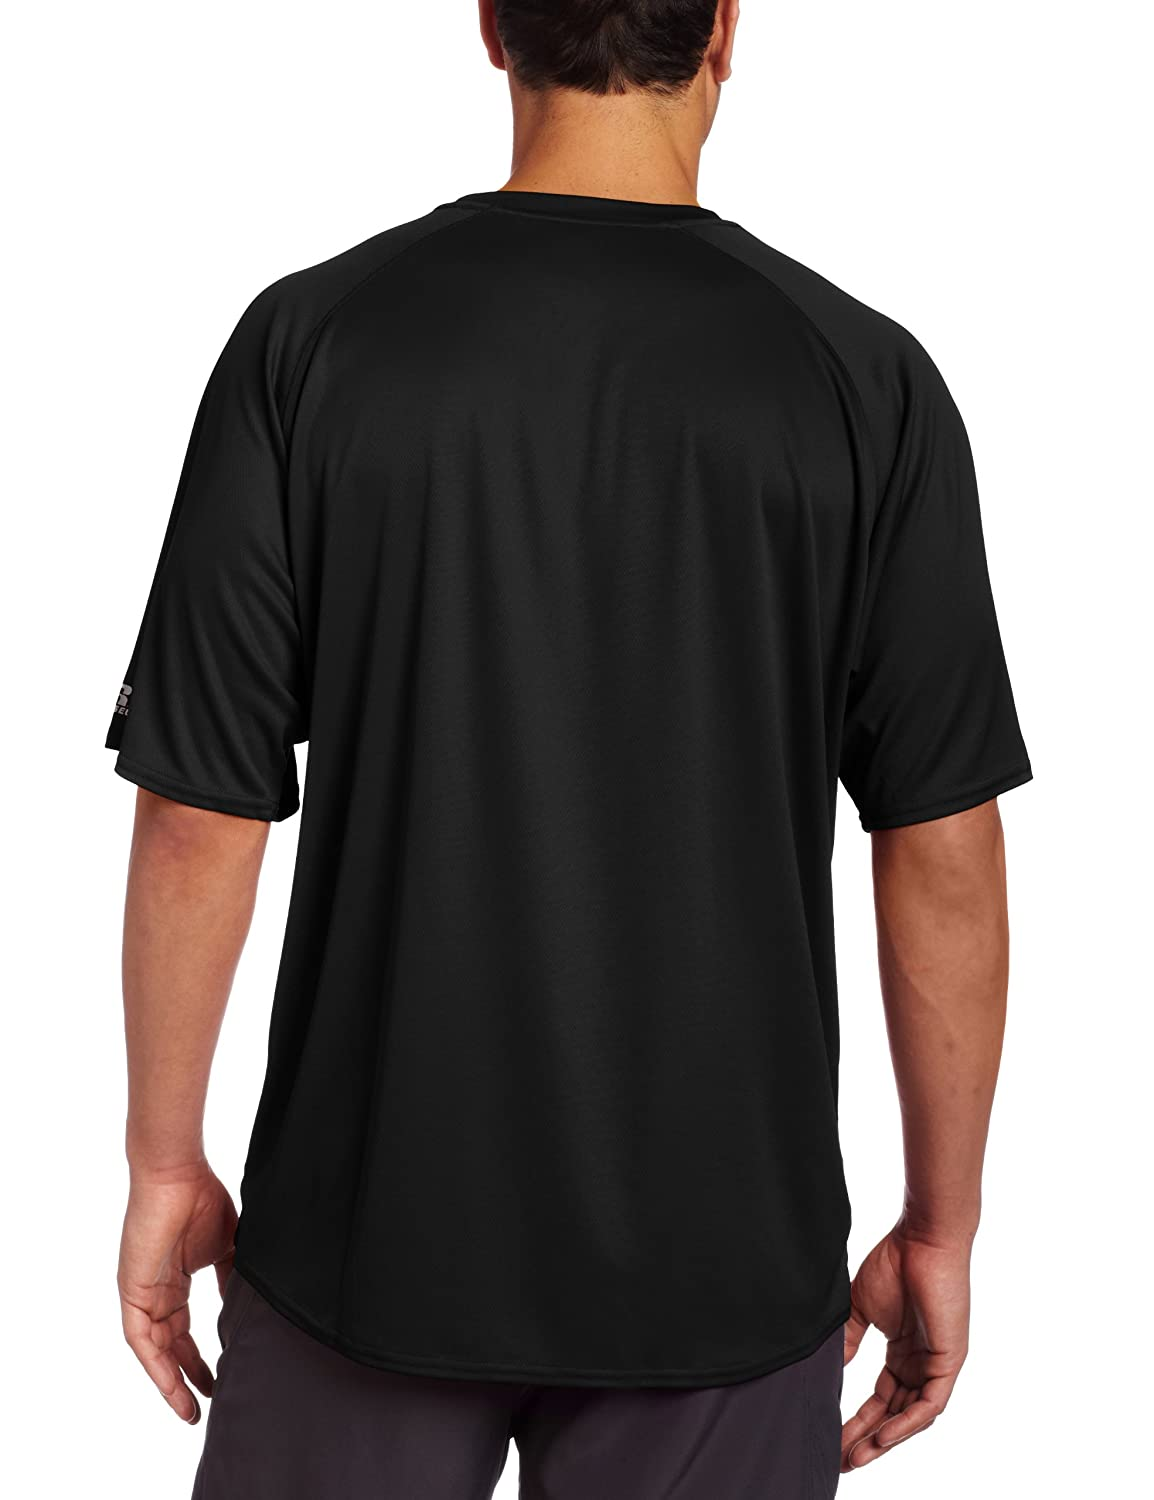 43cf21b3 Russell Athletic Men's Short-Sleeve Dri-Power T-Shirt at Amazon Men's  Clothing store: Athletic T Shirts